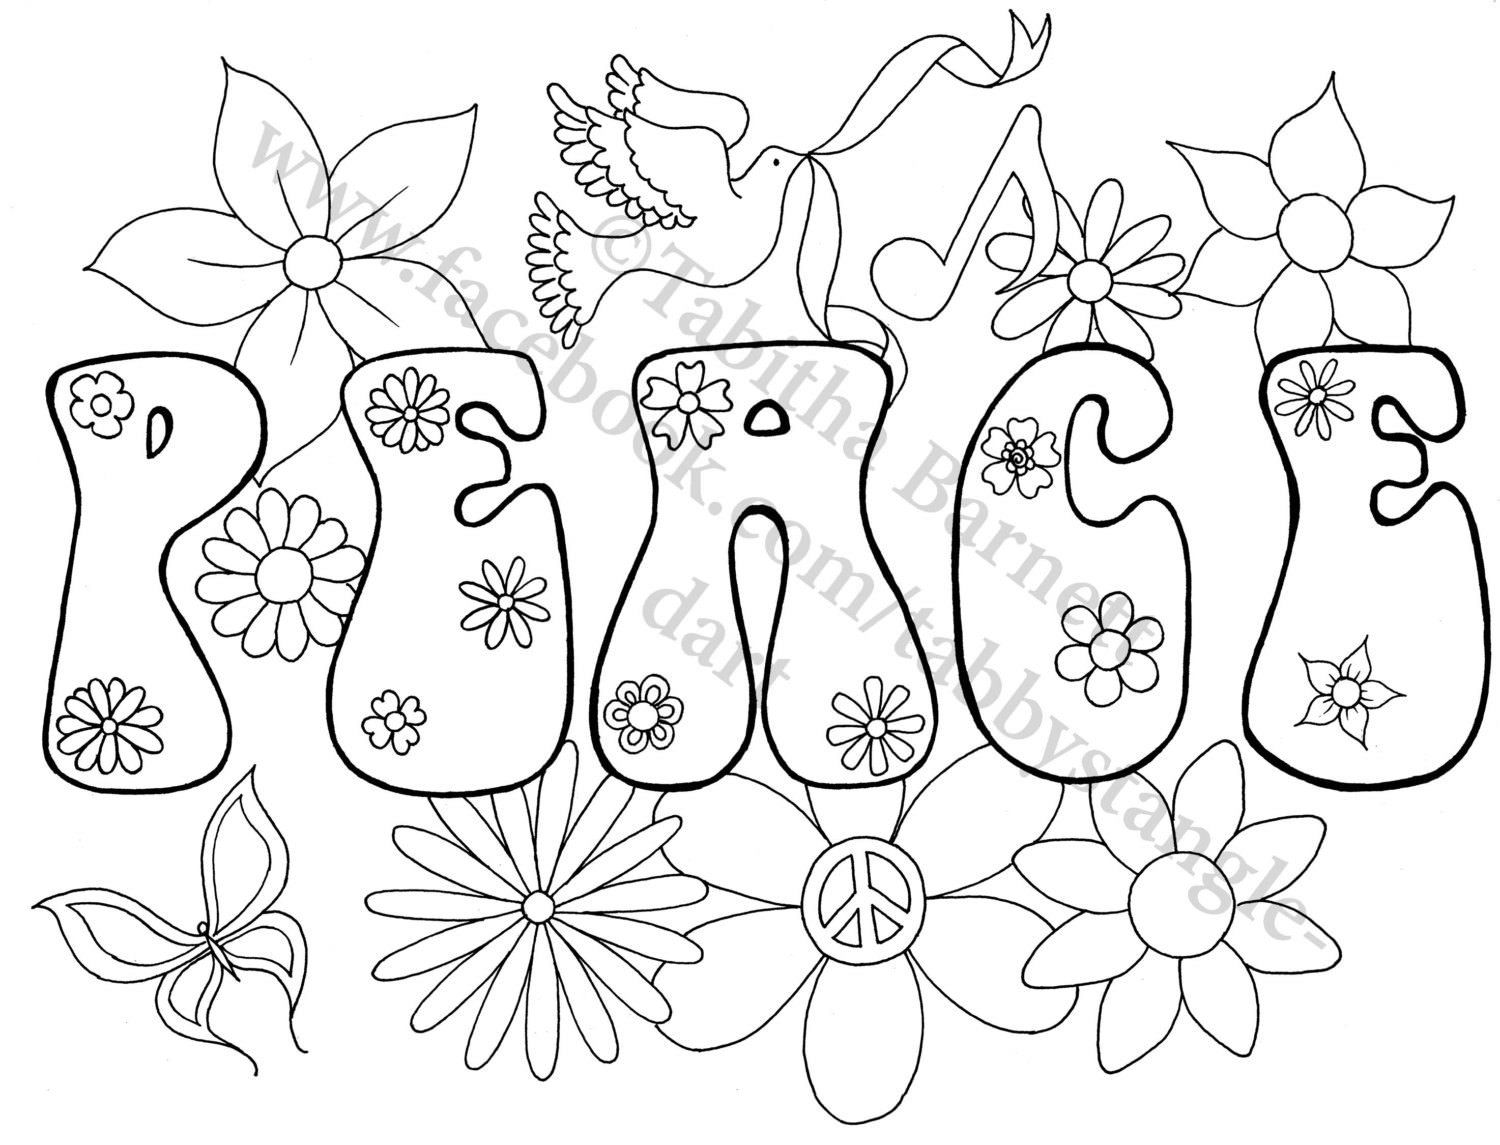 27 Inspired Image Of Peace Coloring Pages Entitlementtrap Com Earth Coloring Pages Coloring Pages Mandala Coloring Pages